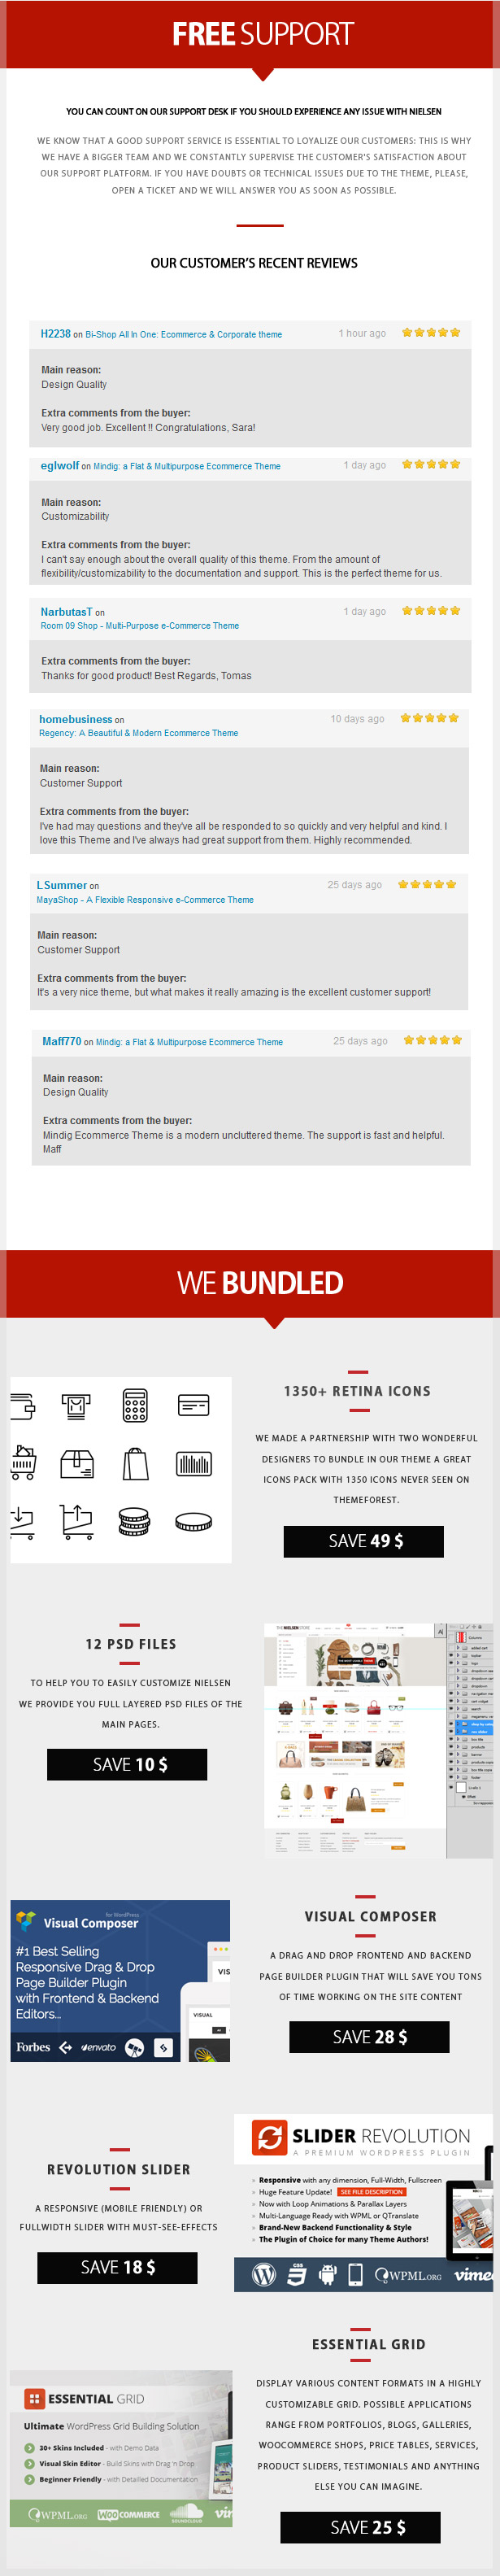 Nielsen - E-commerce WordPress Theme - 4